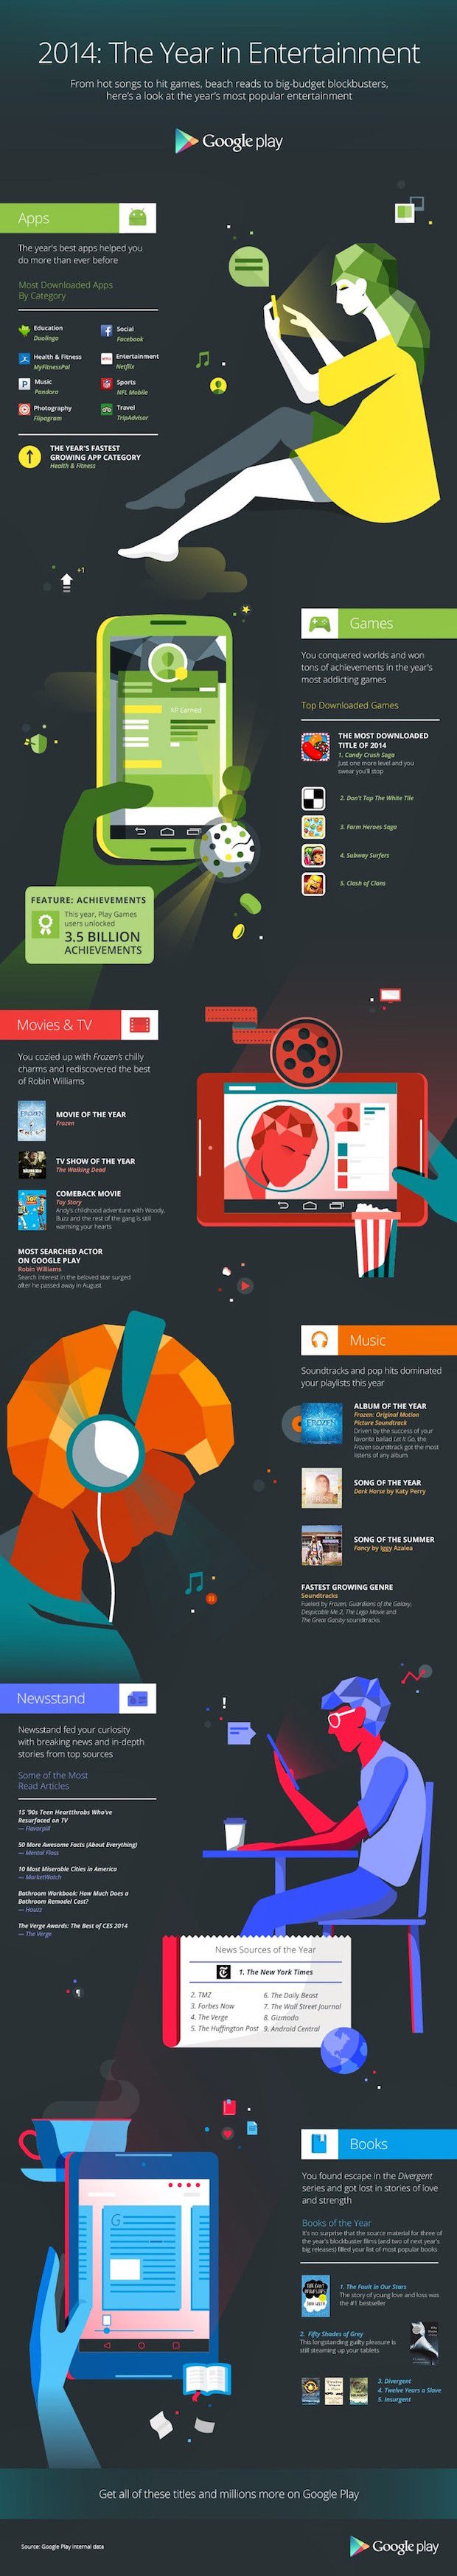 Infographic Google Play